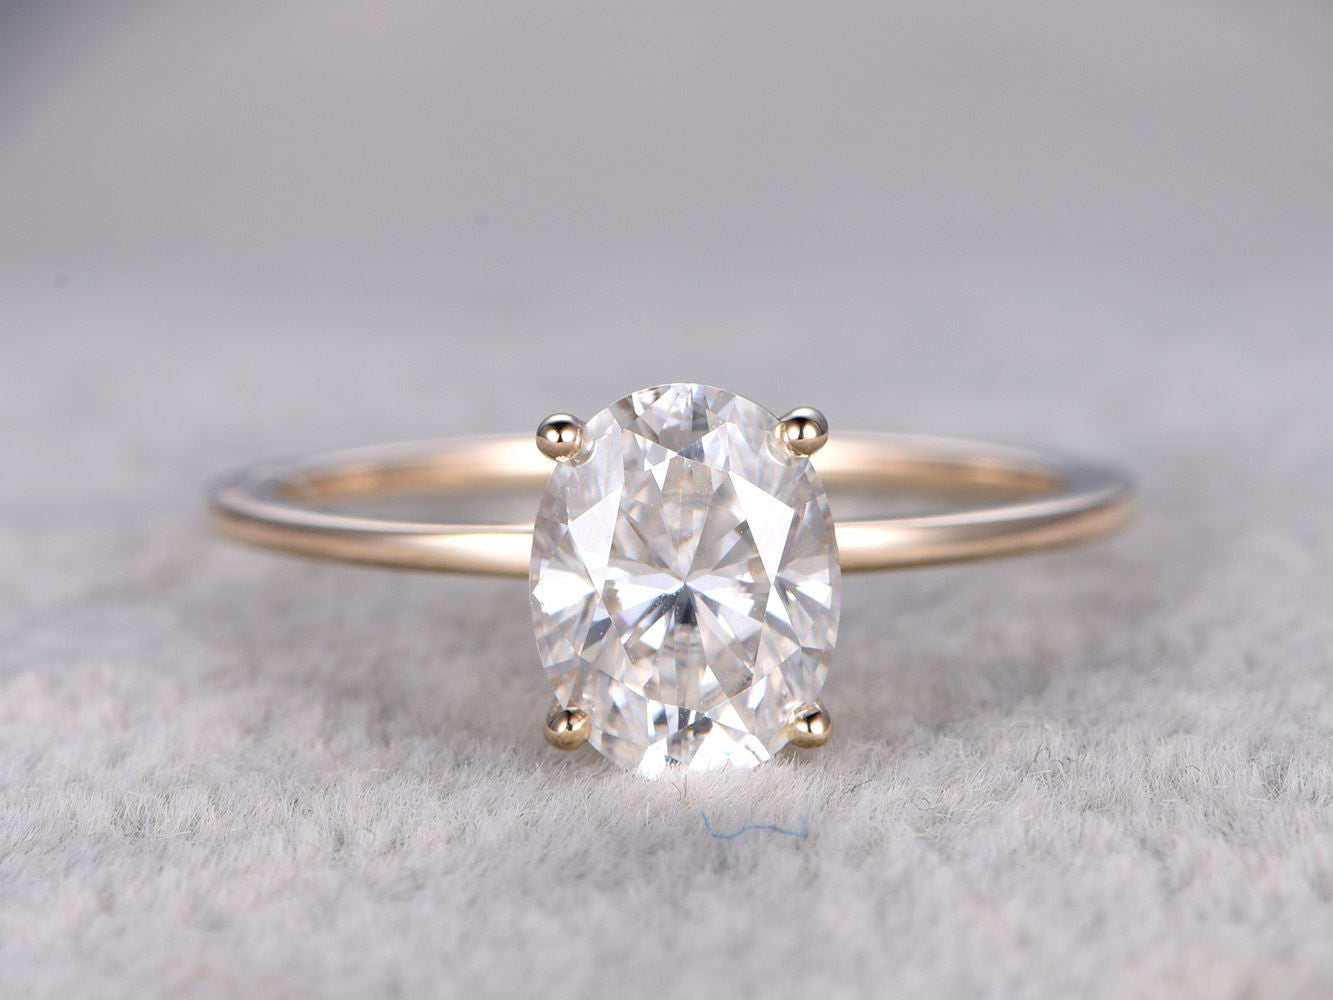 7x9mm Oval Moissanite Engagement ring! 14k yellow gold,Solitaire,Plain gold band,Bridal Ring,Classic,Forever Brilliant,Forever One available